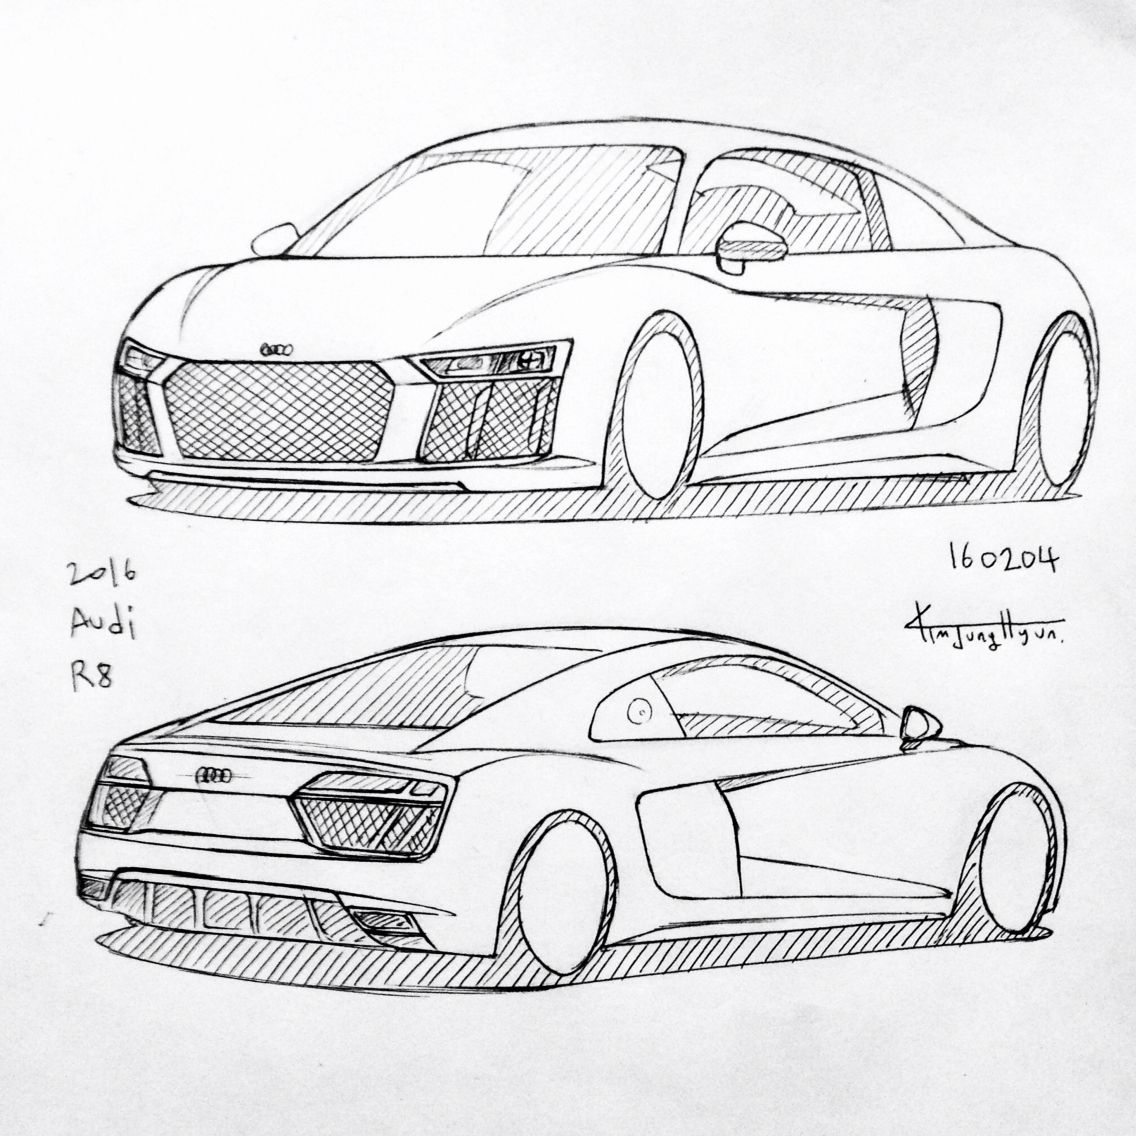 Car Drawing Audi R Prisma On Paper KimJH Daily - Audi car drawing